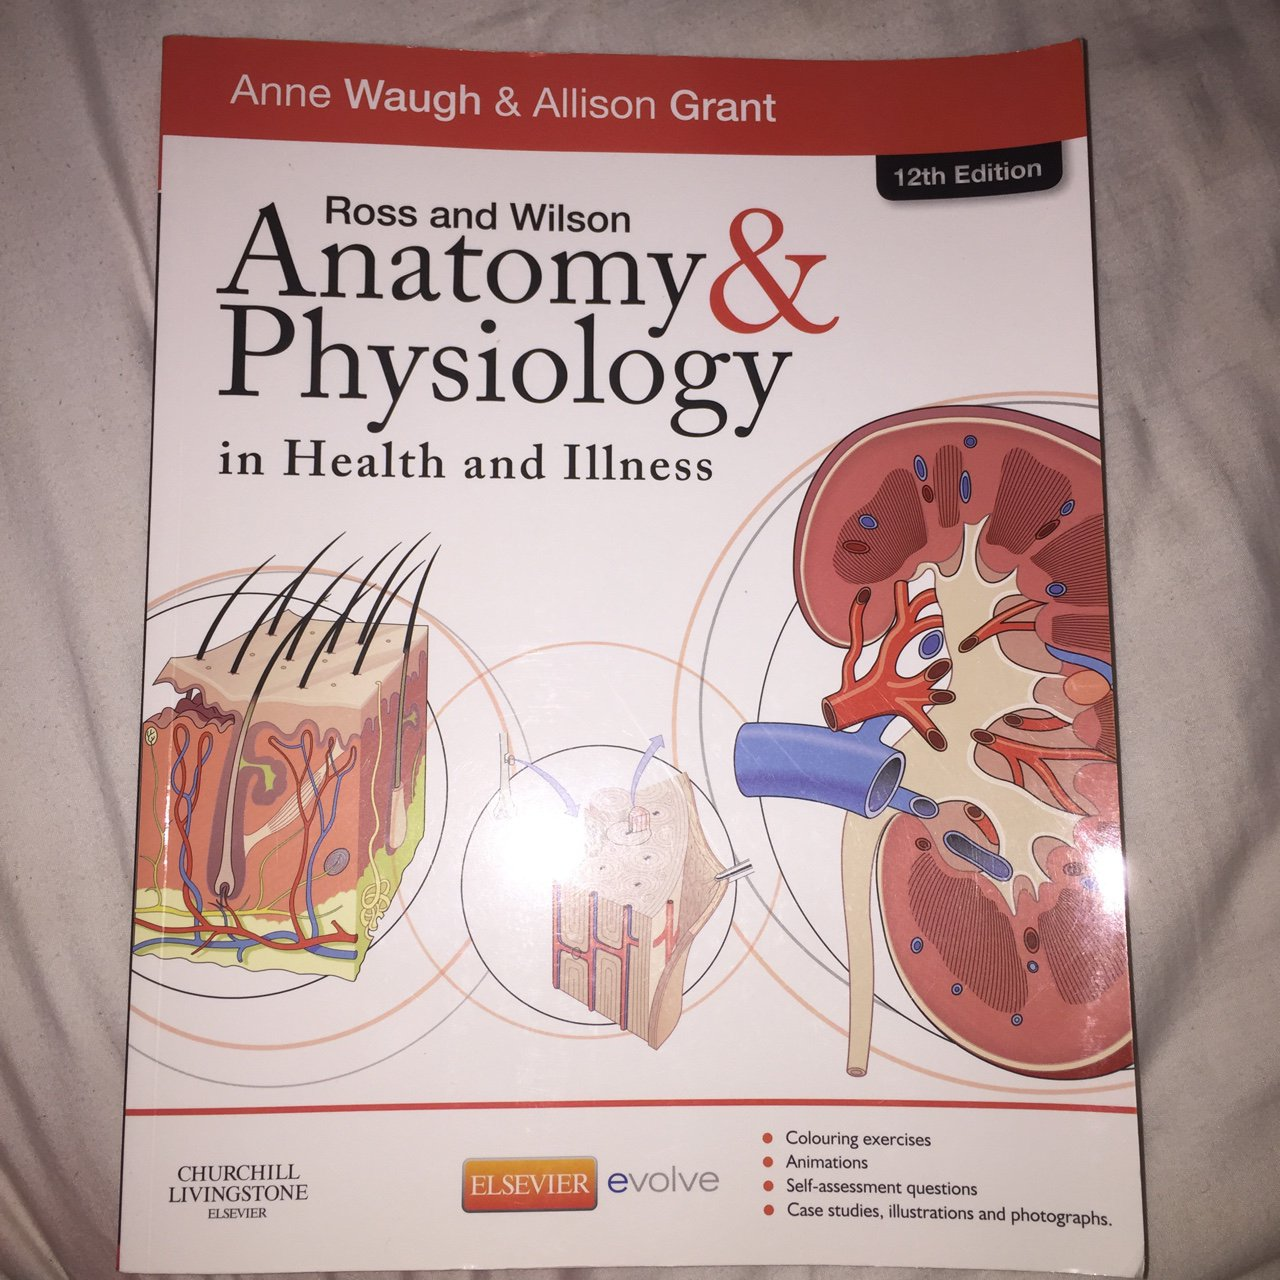 Anatomy & Physiology in health and illness. Ross and Wilson. - Depop